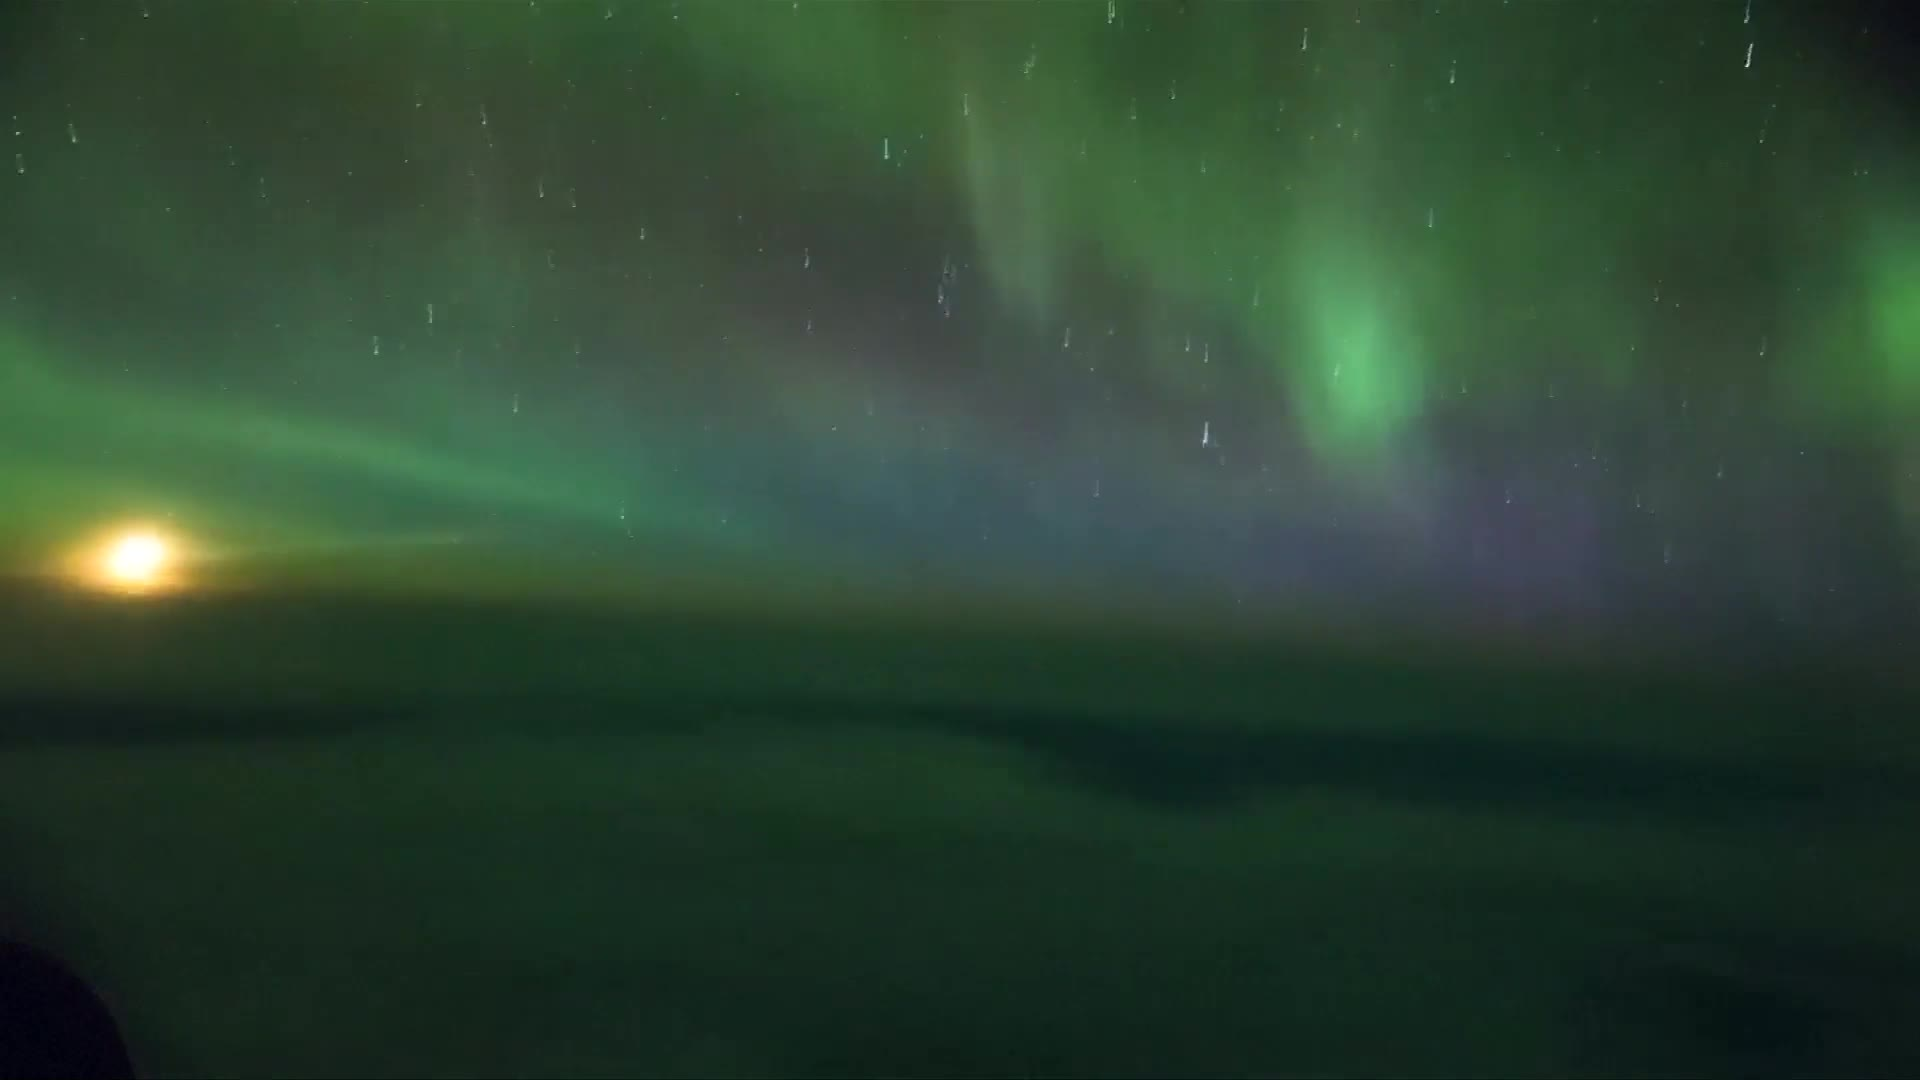 Time-lapse of Aurora Australis captured from inside airplane cabin